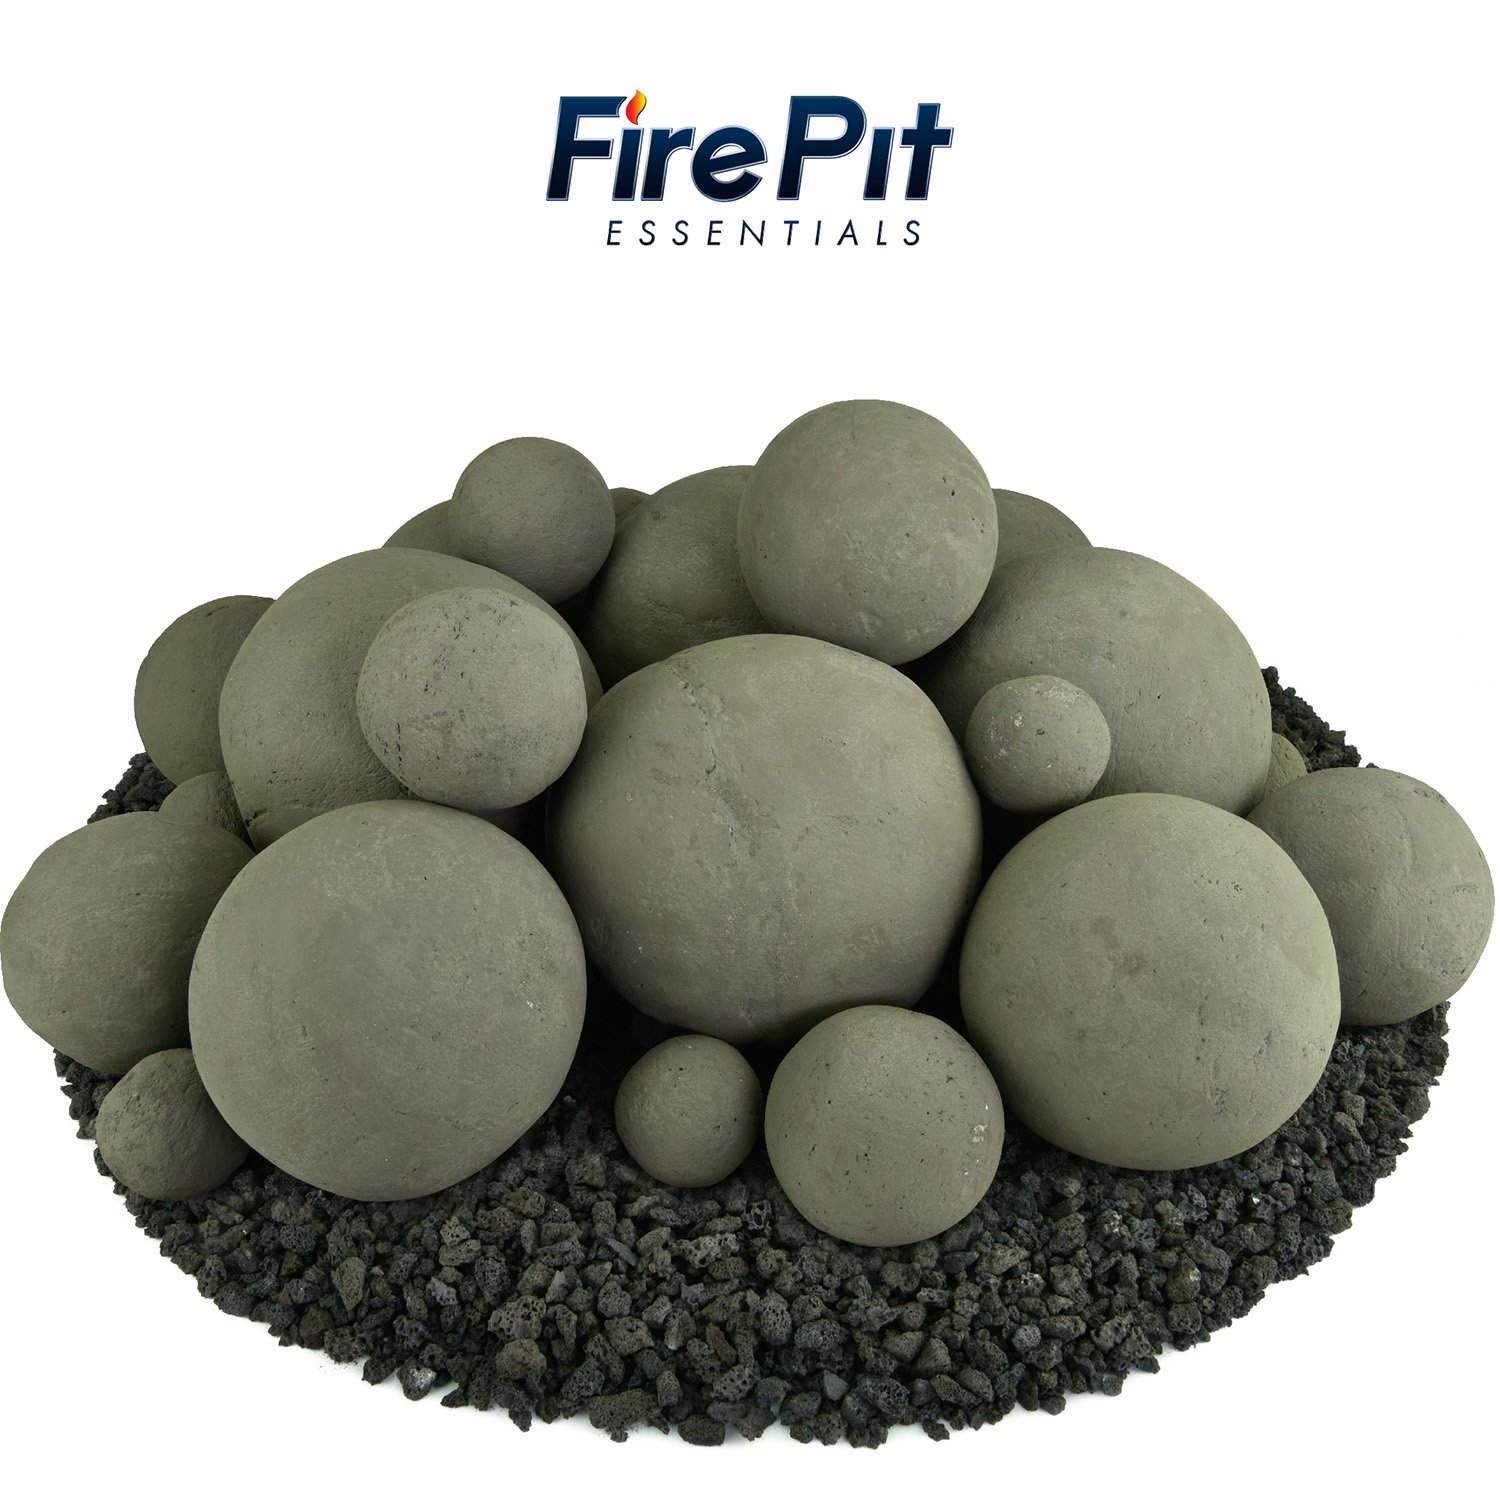 Ceramic Fire Balls | Mixed Set of 23 | Modern Accessory for Indoor and Outdoor Fire Pits or Fireplaces – Brushed Concrete Look | Charcoal Gray